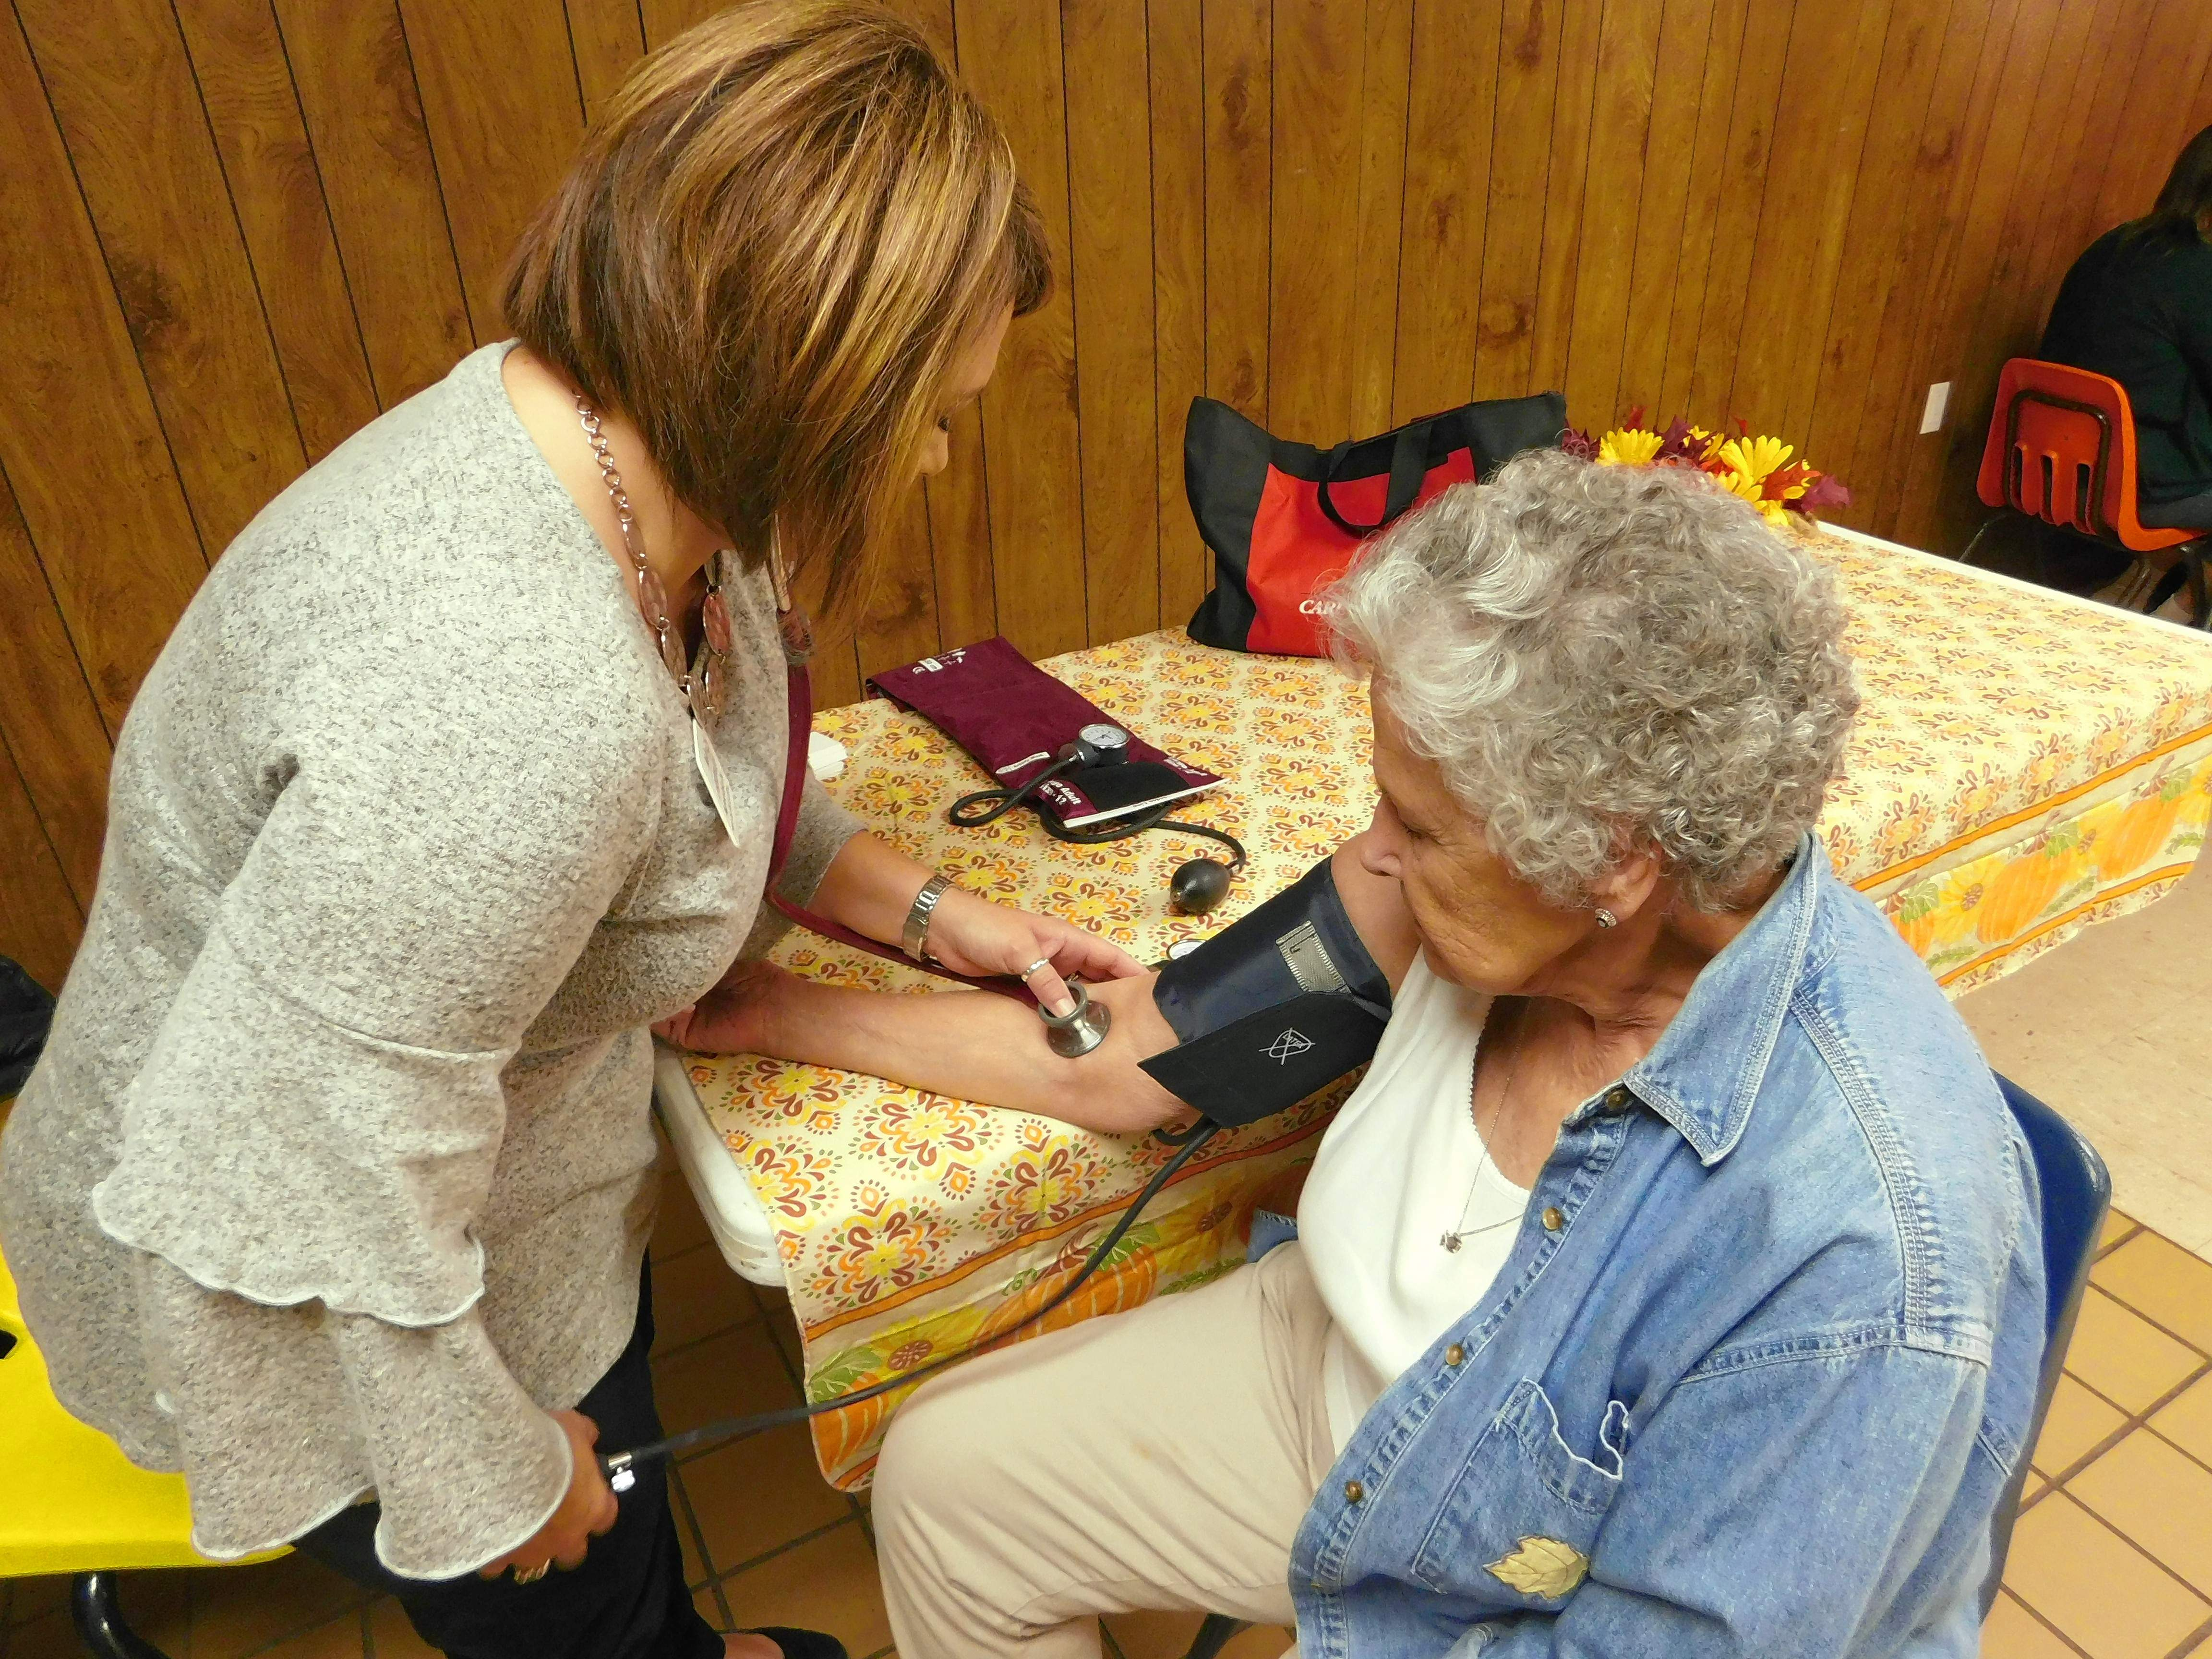 Registered nurse Michelle Rollins, left, does a blood pressure check for Phyllis Pearson. Rollins said she saw a need she could fill, adding another valuable service to the community dinner.